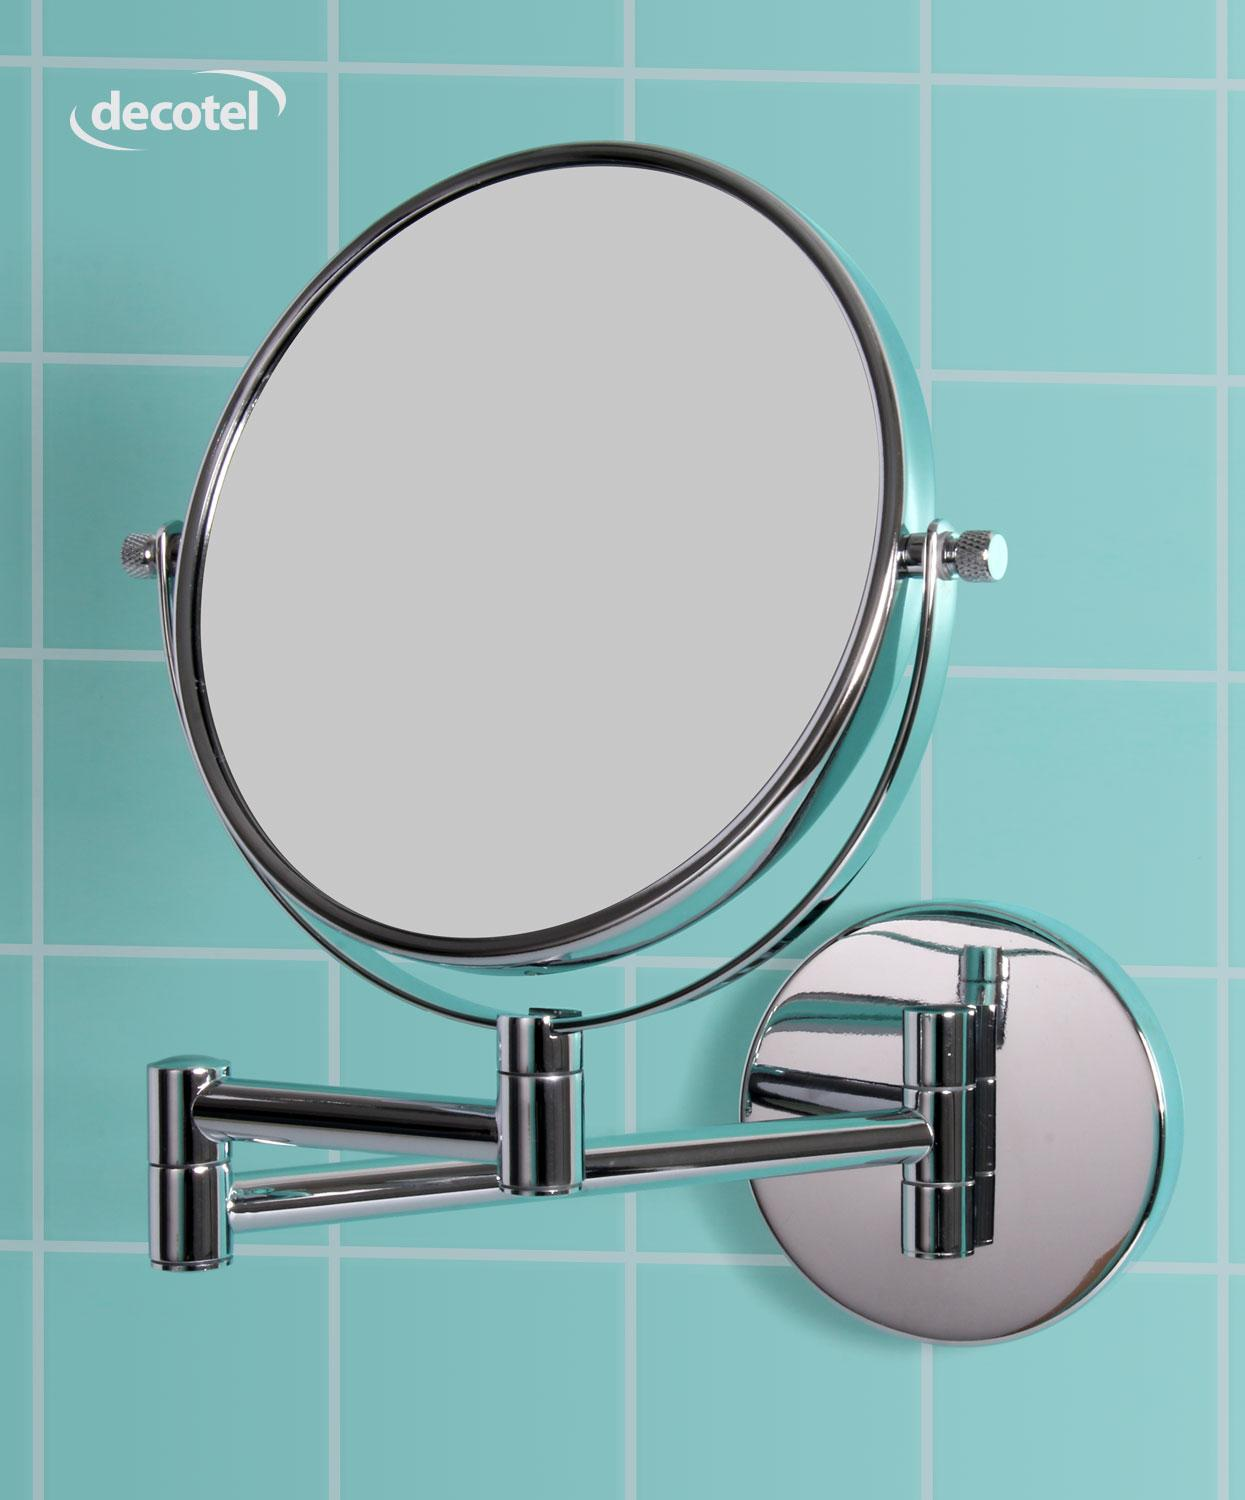 Decotel chrome bathroom mirror